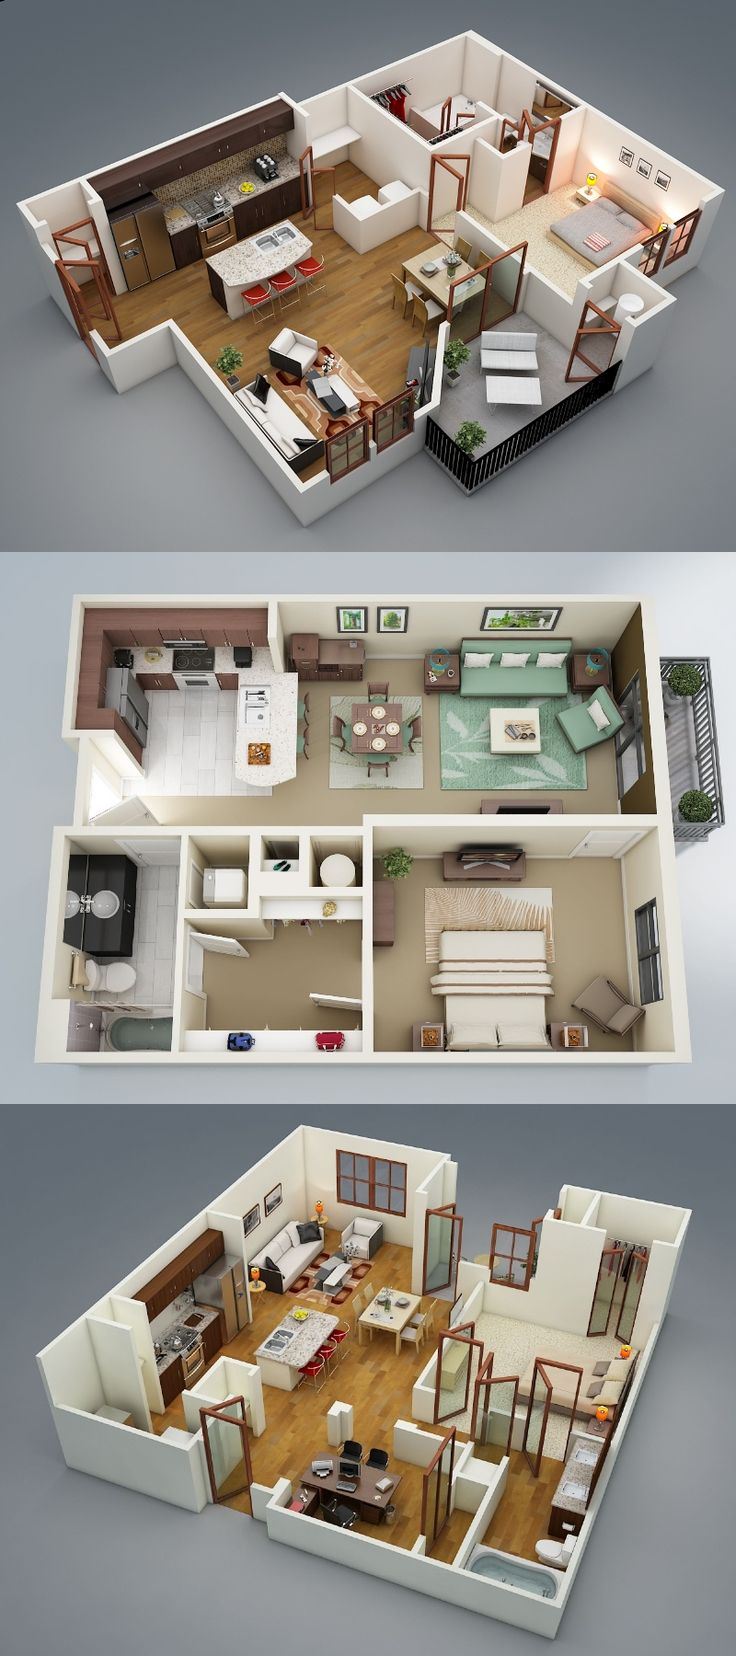 1 Bedroom Apartment/House Plans |Visualizer: Rishabh Kushwaha